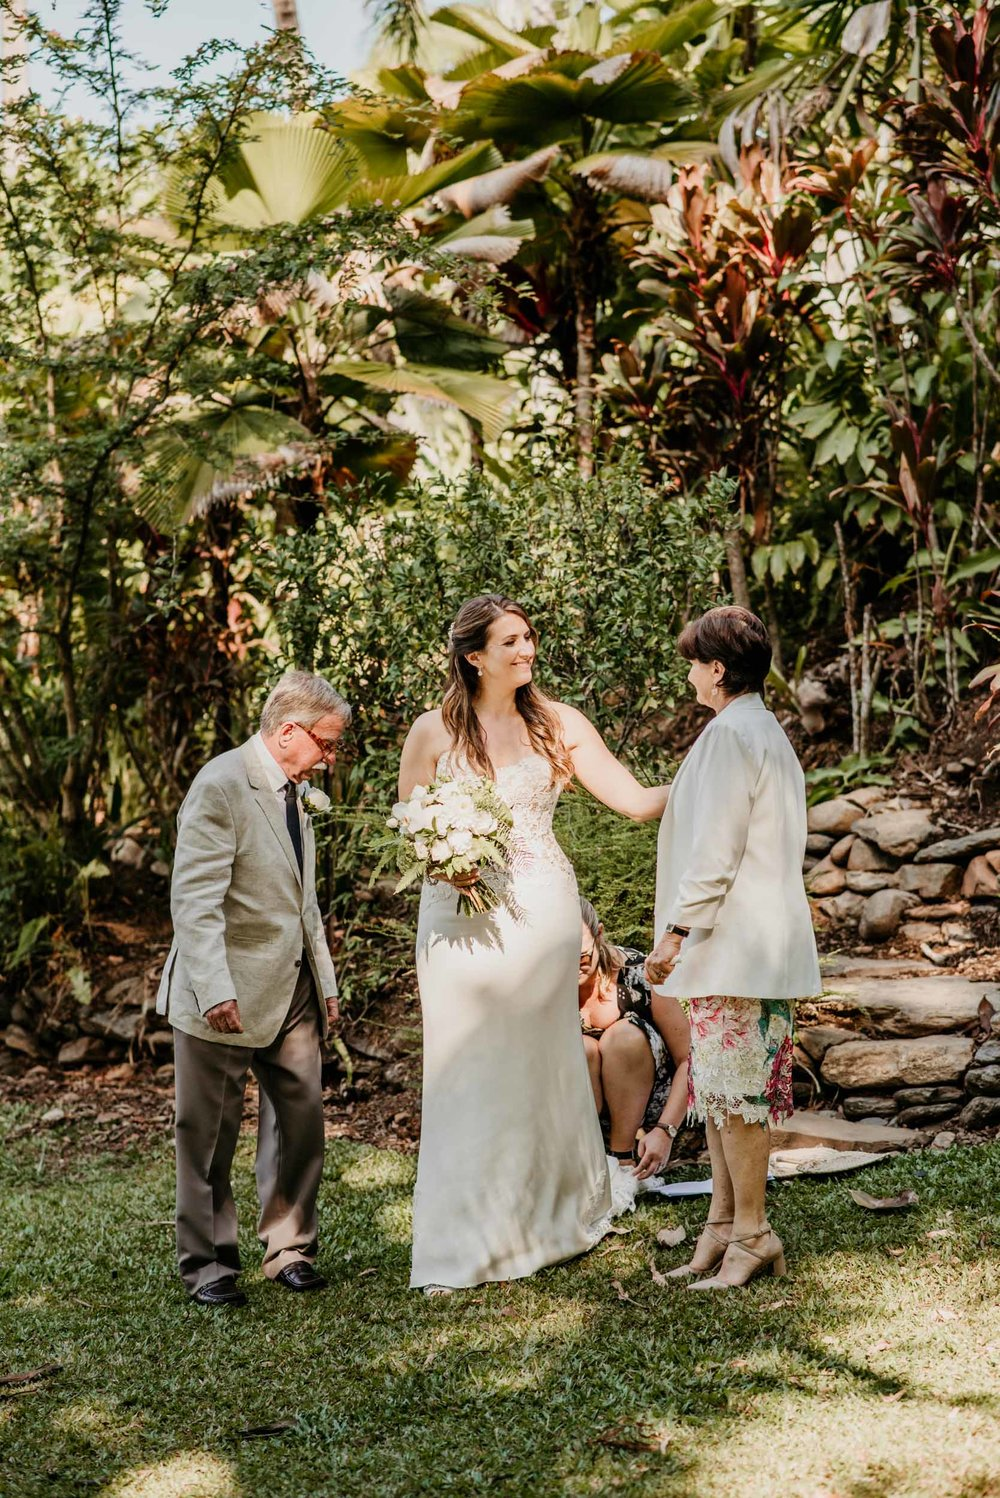 The Raw Photographer - Cairns Wedding Photographer - Sugar Wharf - Port Douglas Reception - Little Cove Ceremony-39.jpg